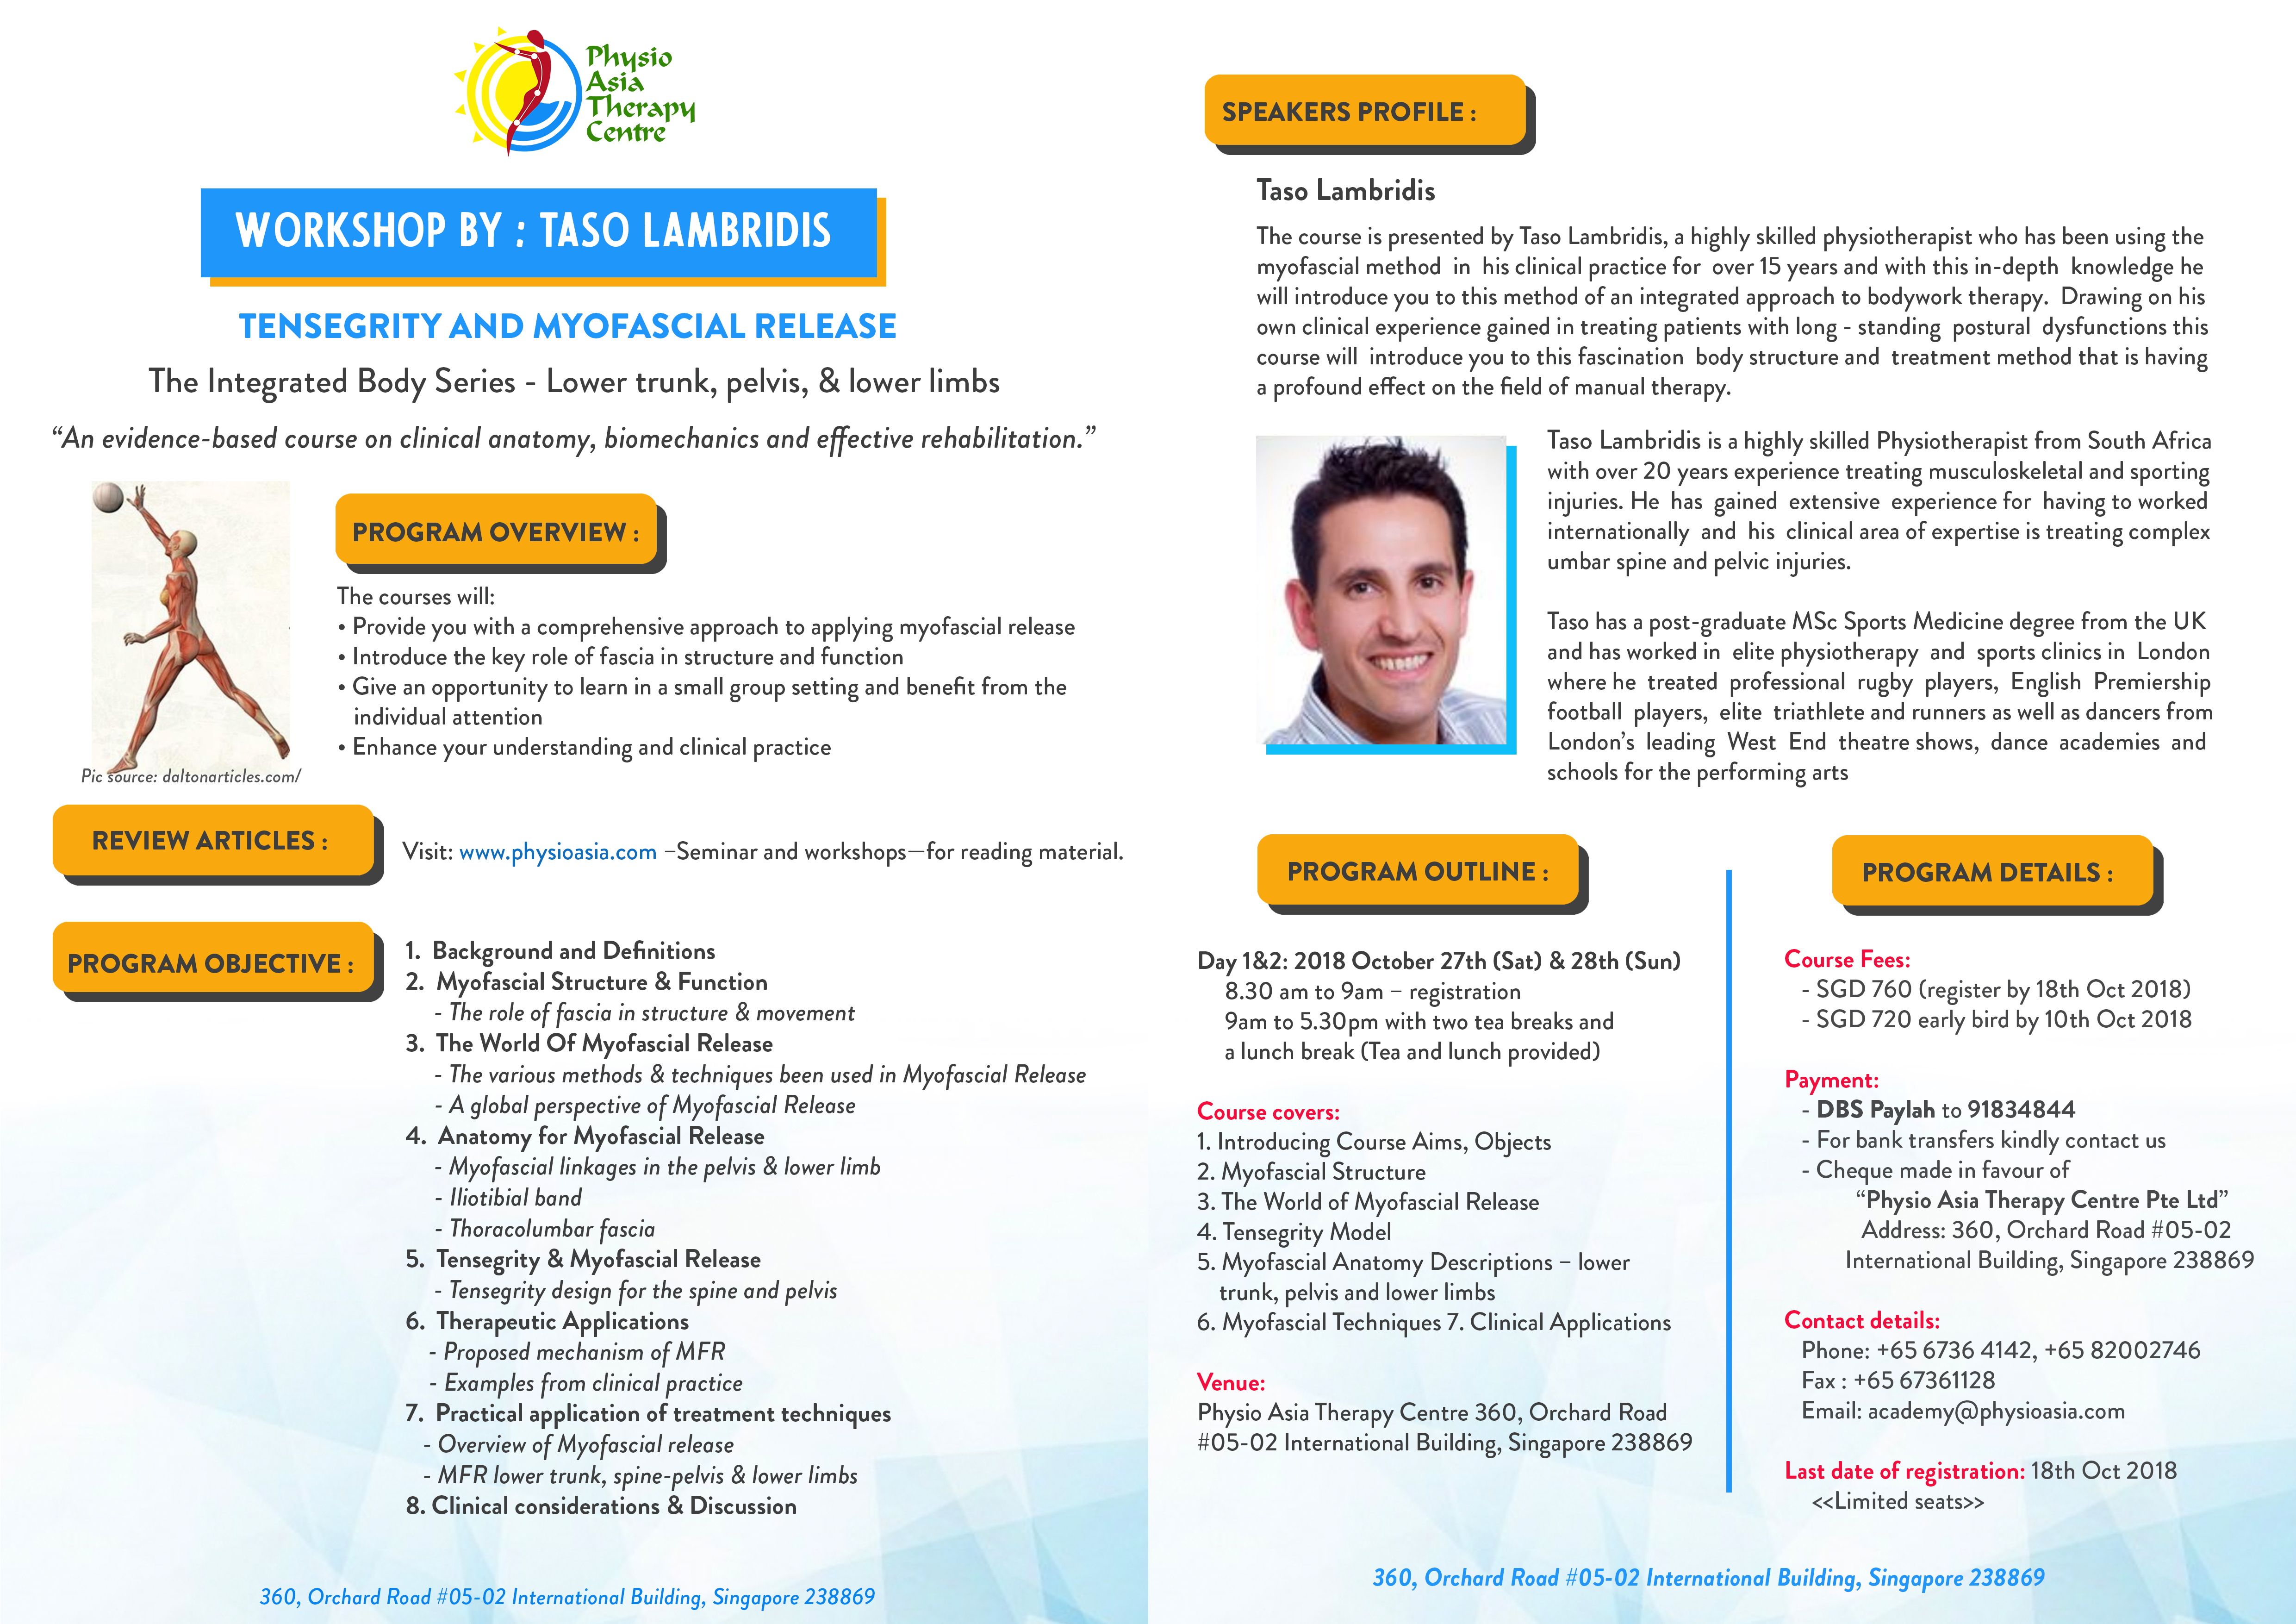 Physiotherapy Asia